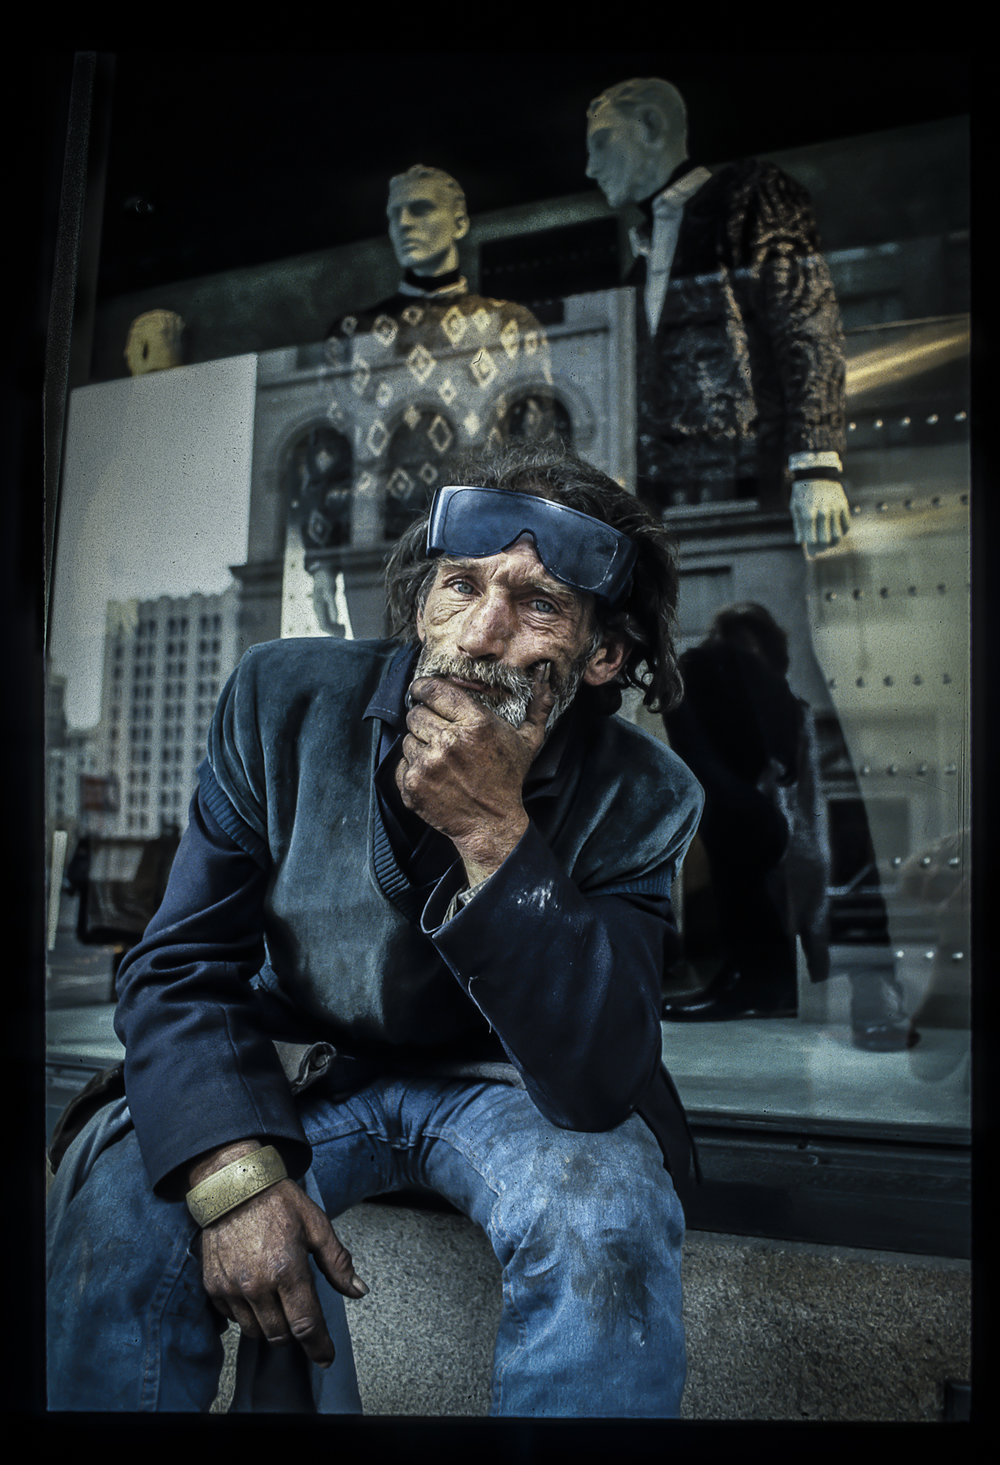 homeless guy store window-Edit.jpg